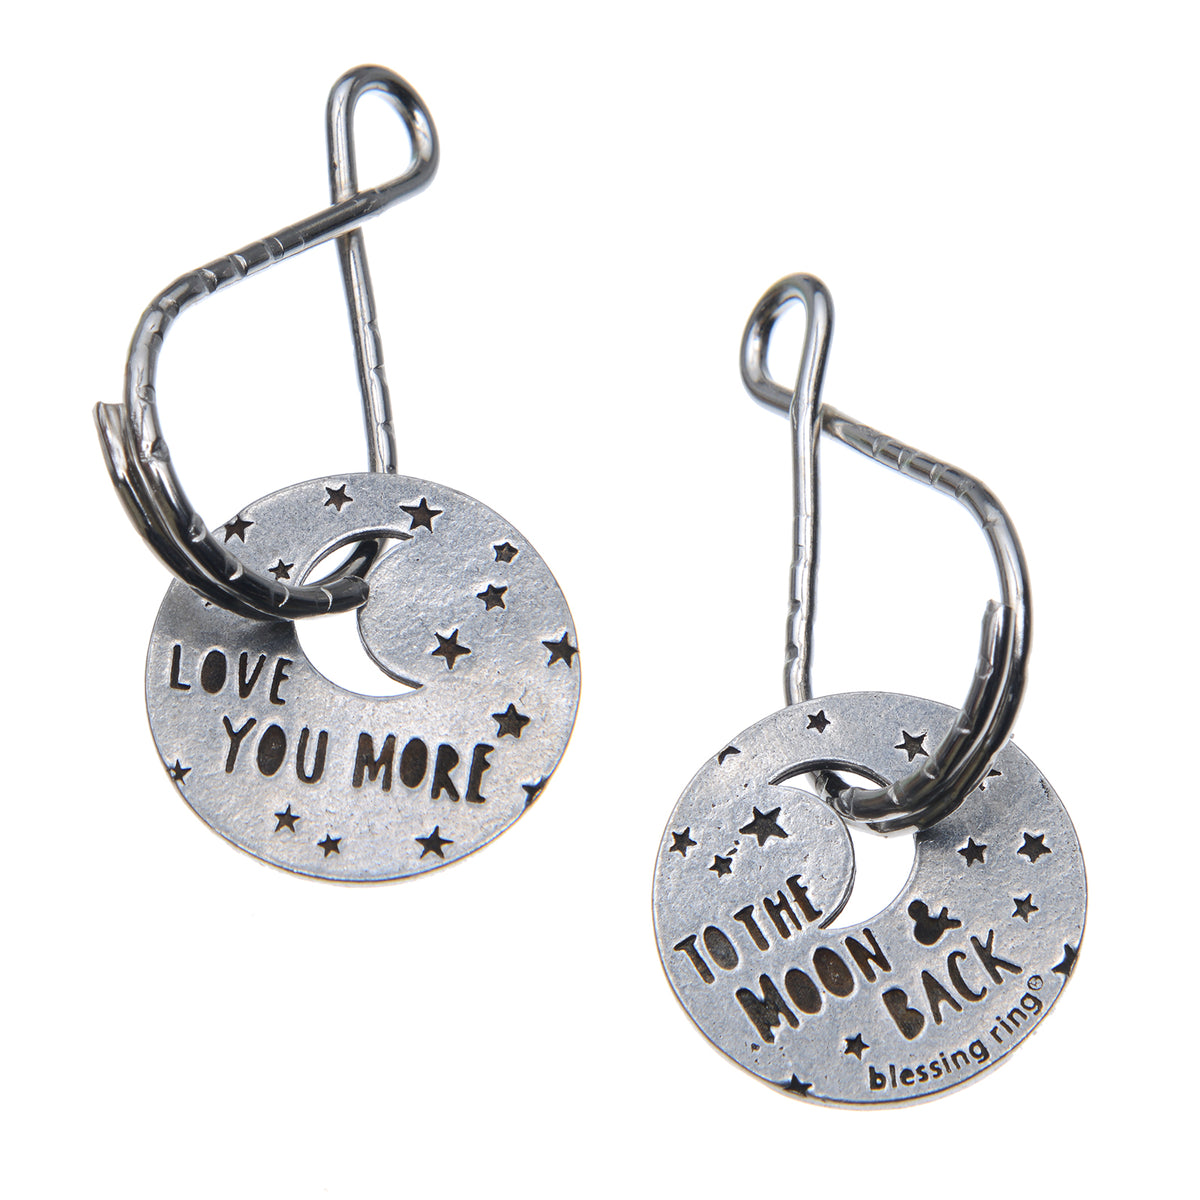 Love You More Blessing Rings Charm, Pewter, Handcrafted